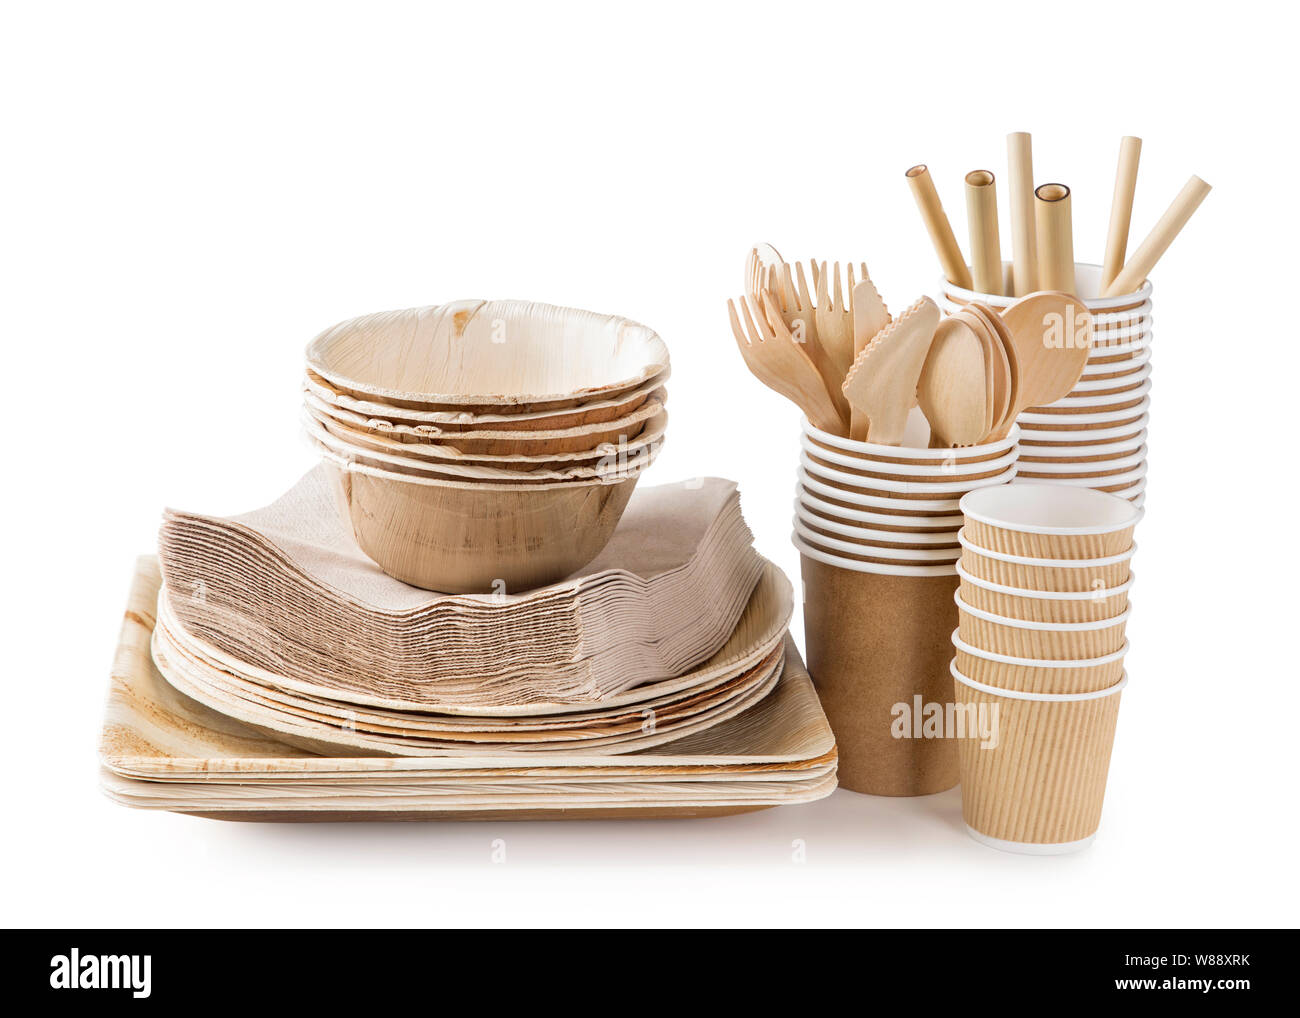 Eco Friendly Disposable Tableware Isolated On A White Background Stock Photo Alamy